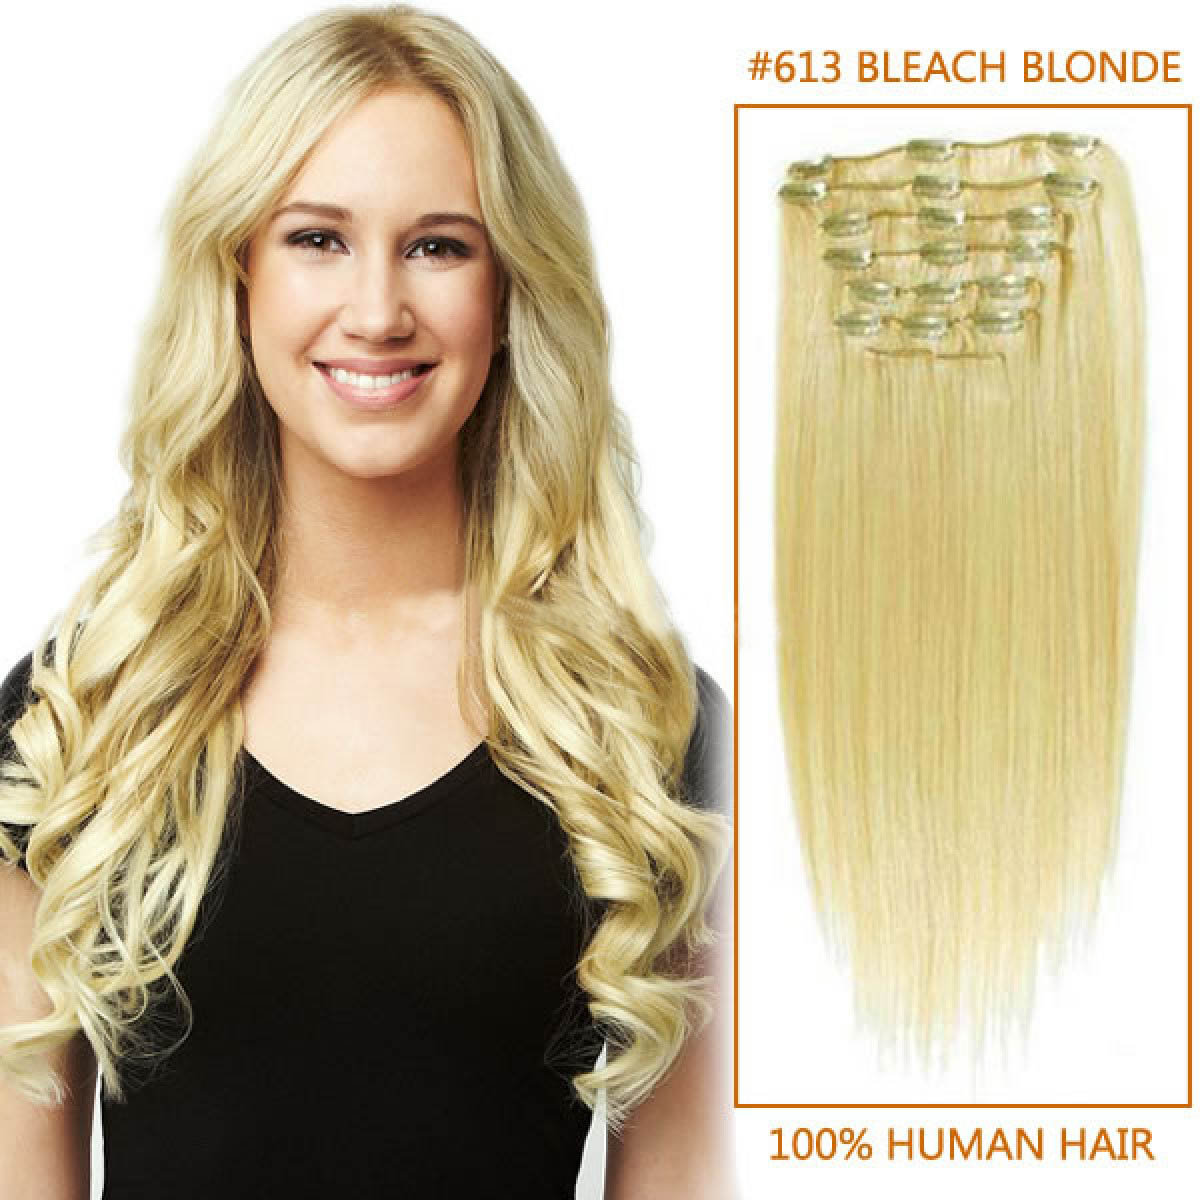 Inch 613 bleach blonde clip in remy human hair extensions 12pcs 24 inch 613 bleach blonde clip in remy human hair extensions 12pcs pmusecretfo Image collections